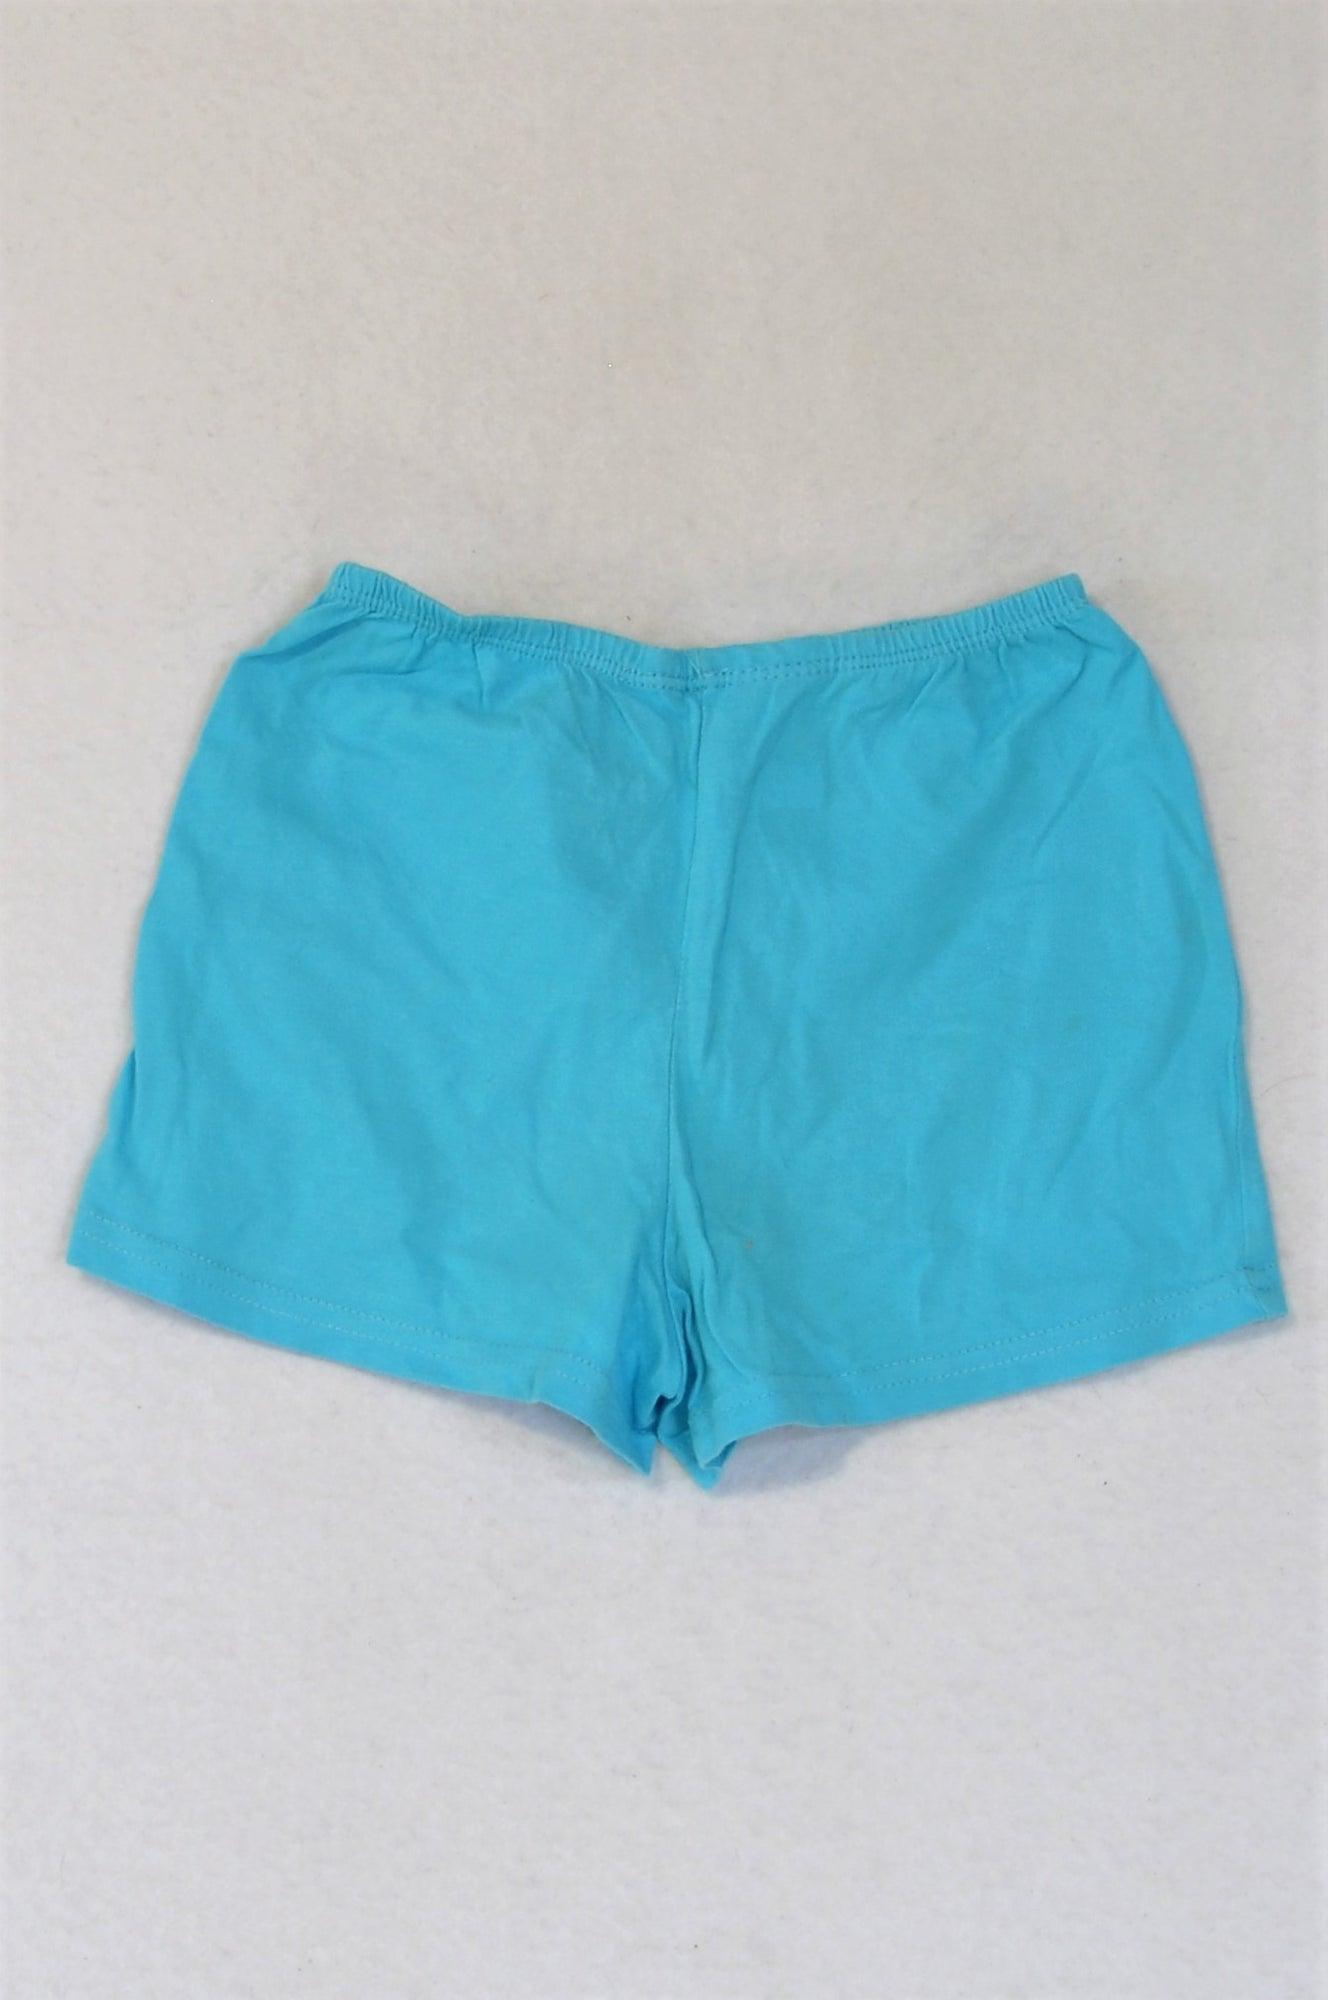 Woolworths Blue Shorts Girls 2-3 years